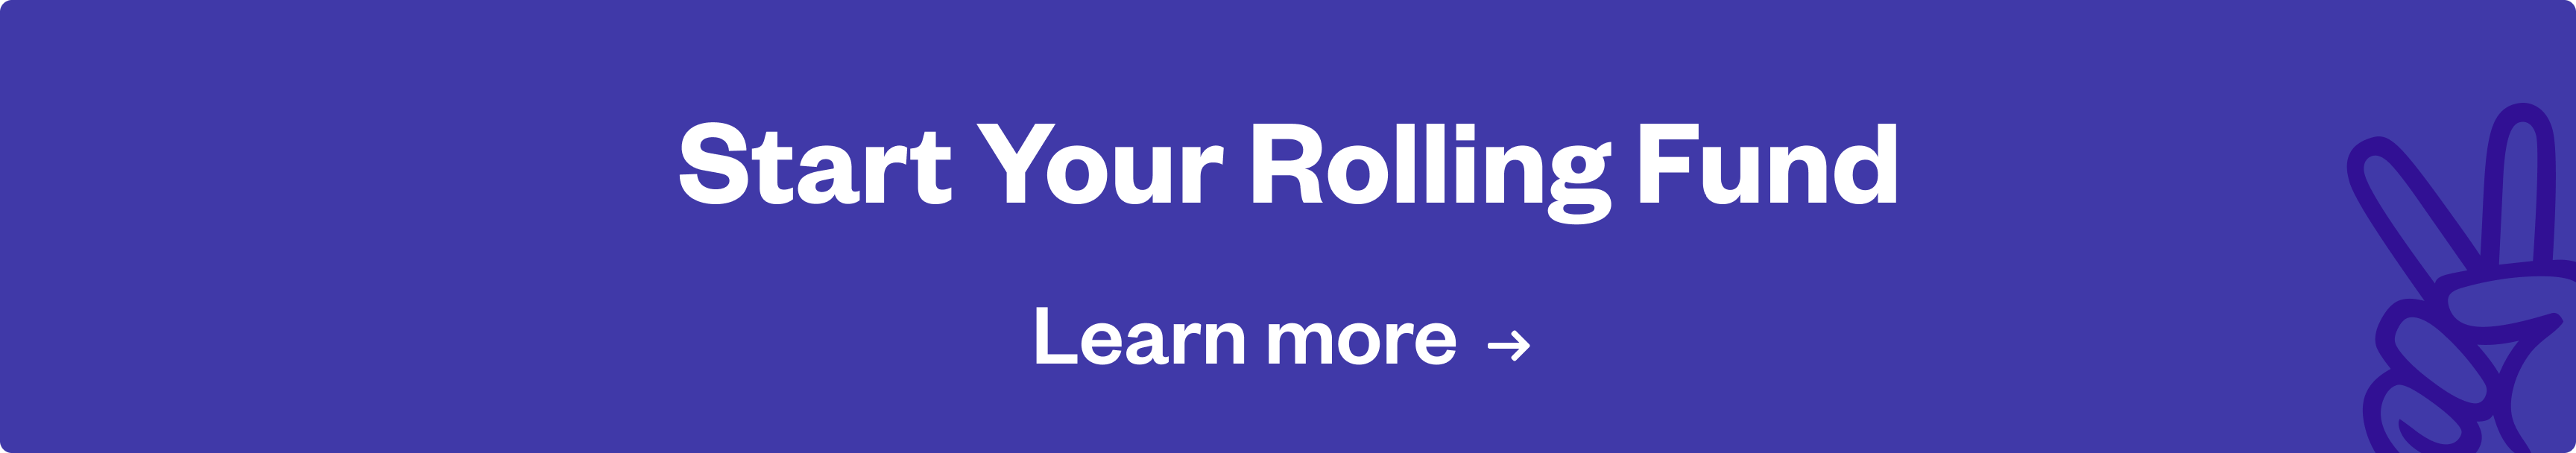 start your rolling fund